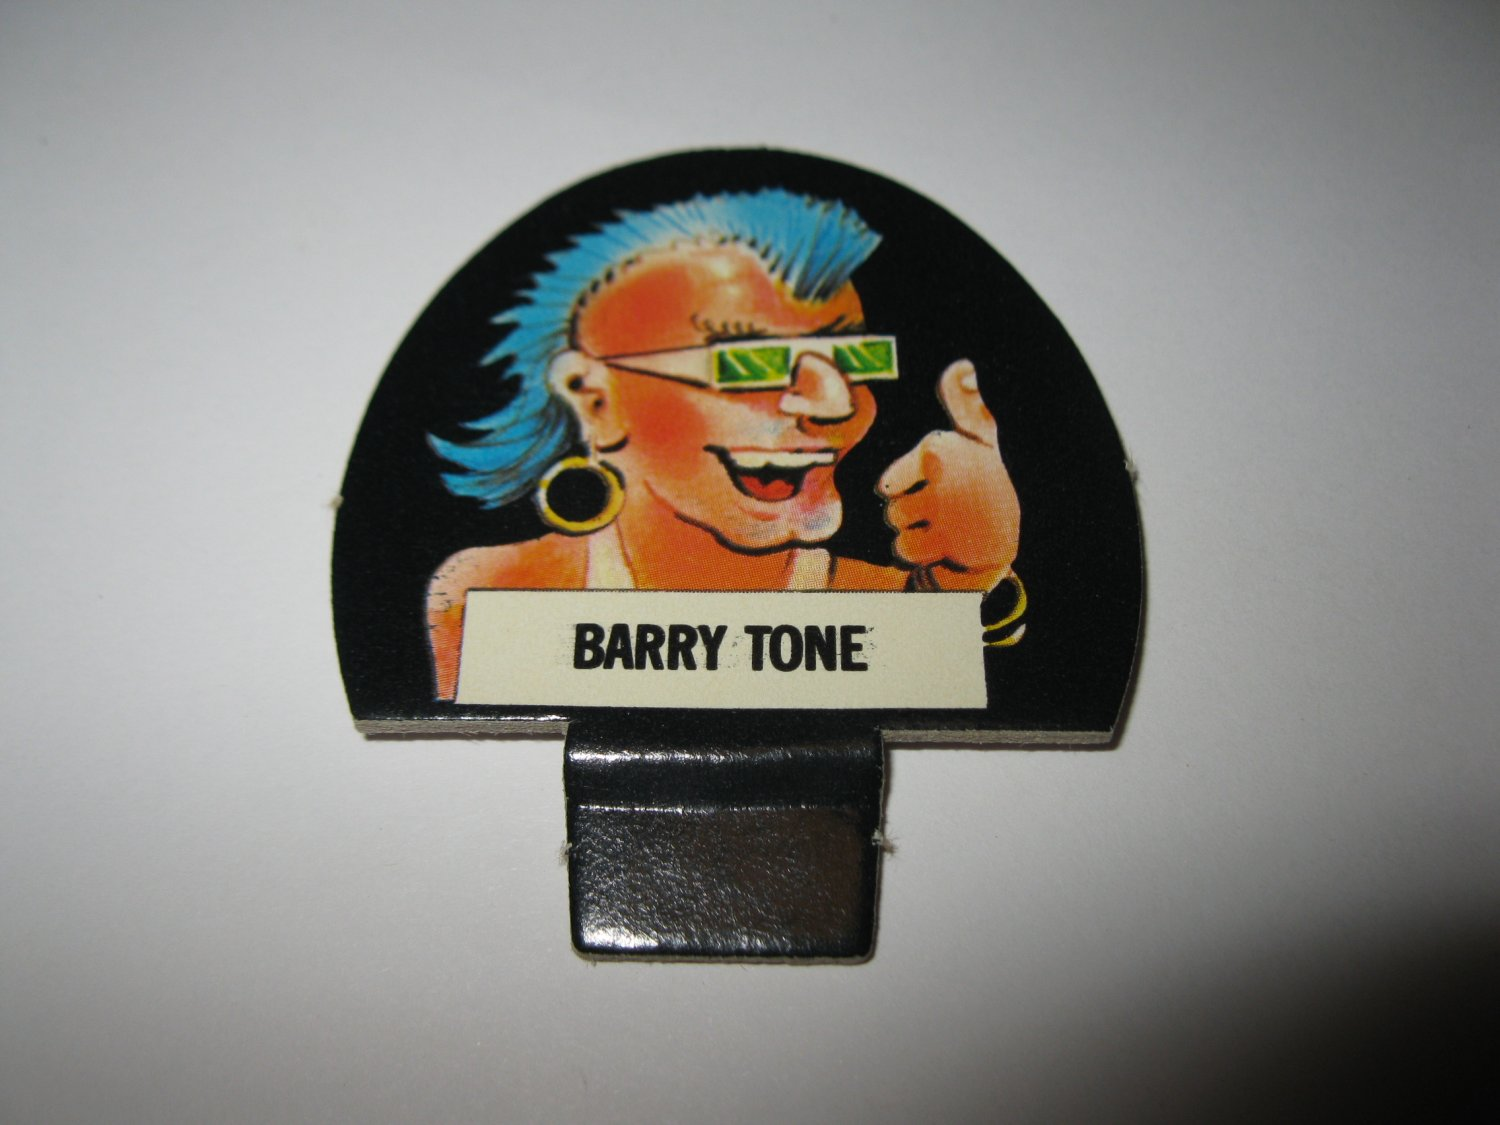 1986 Hollywood Squares Board Game Piece: Barry Tone Player tab